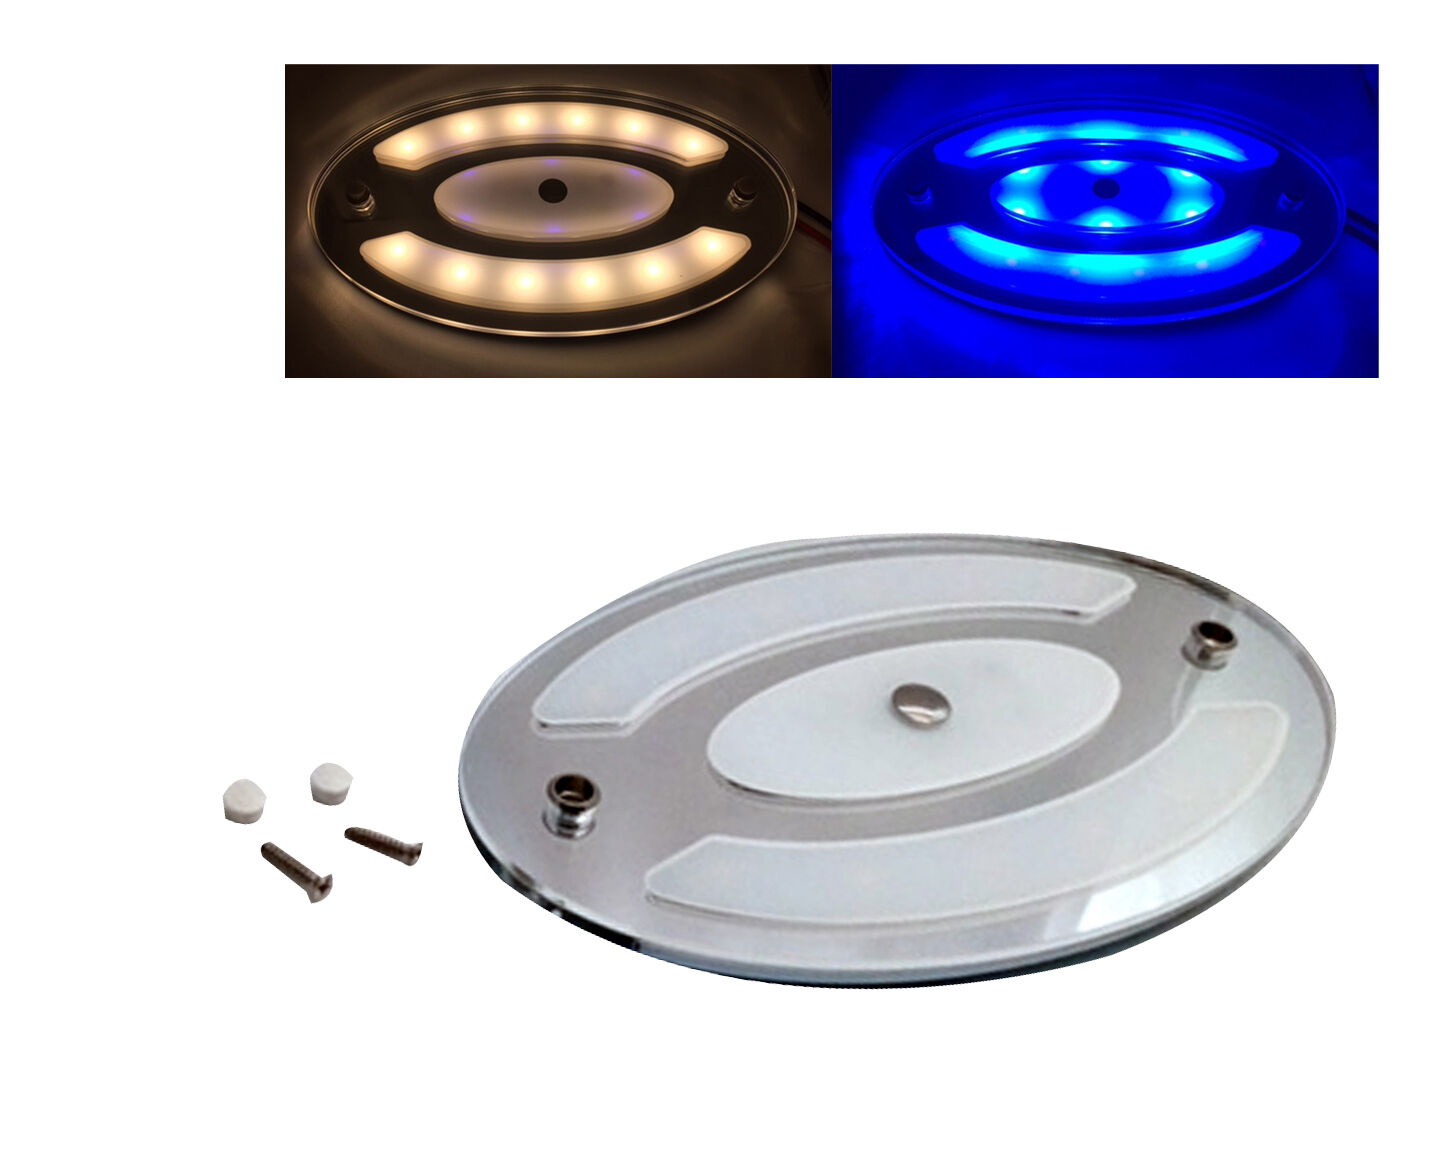 Pactrade Marine 1PCS White bluee Oval LED Ceiling Courtesy Light Mirror Touch